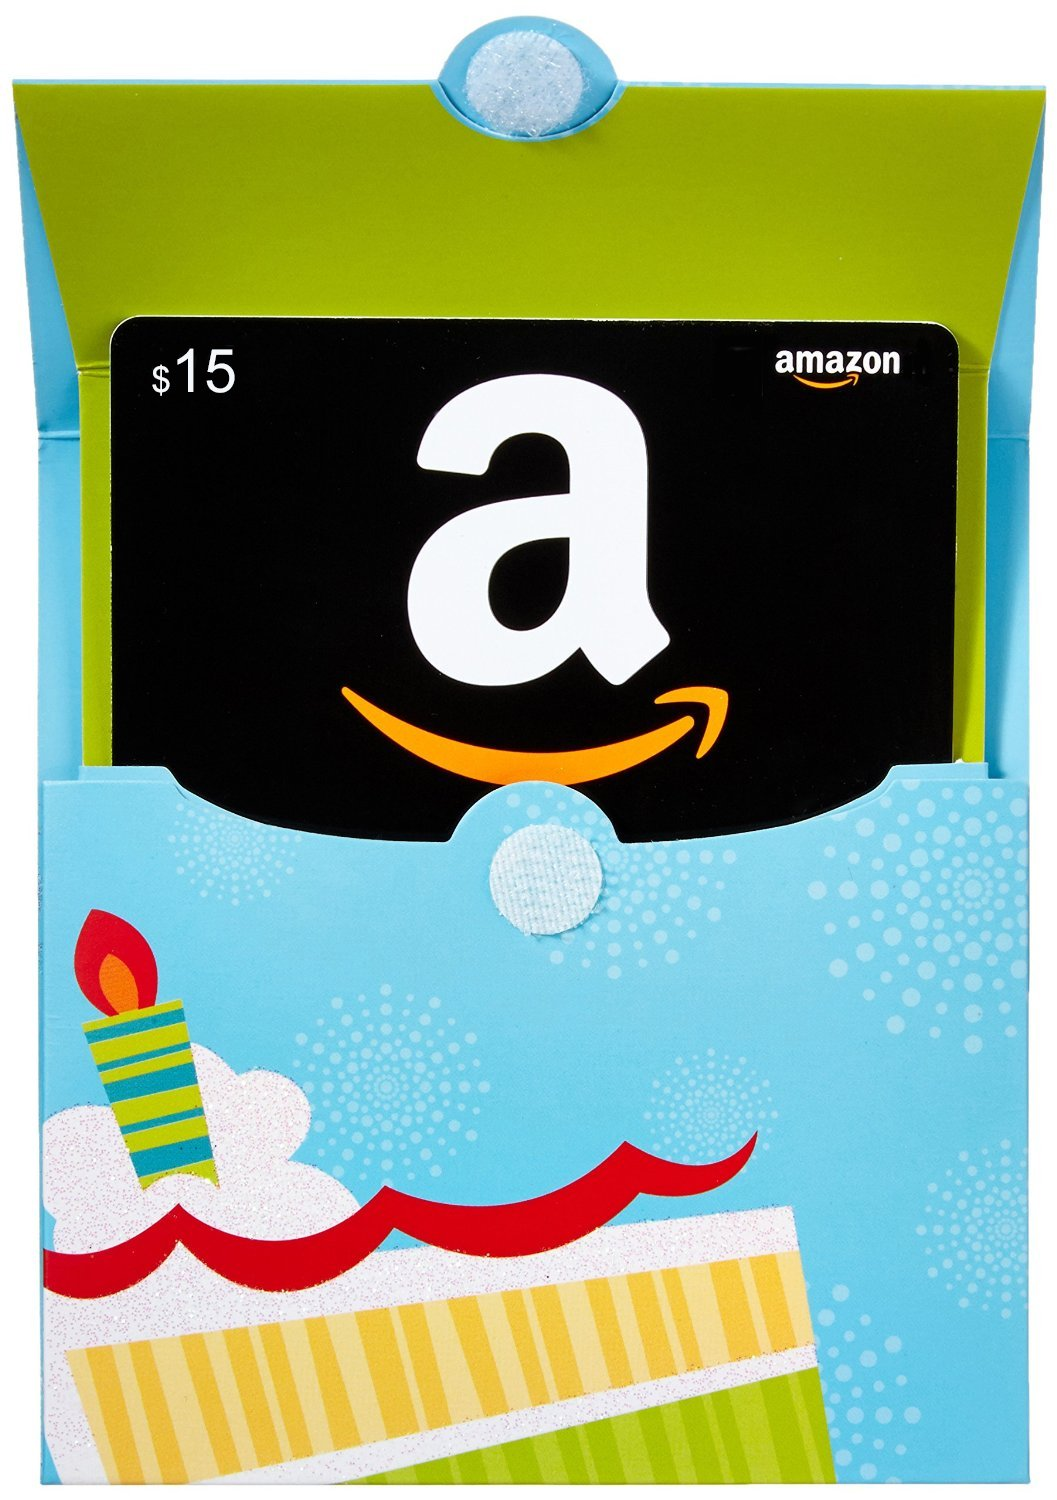 Amazon.ca Card in a Birthday Reveal Amazon.com.ca Inc.